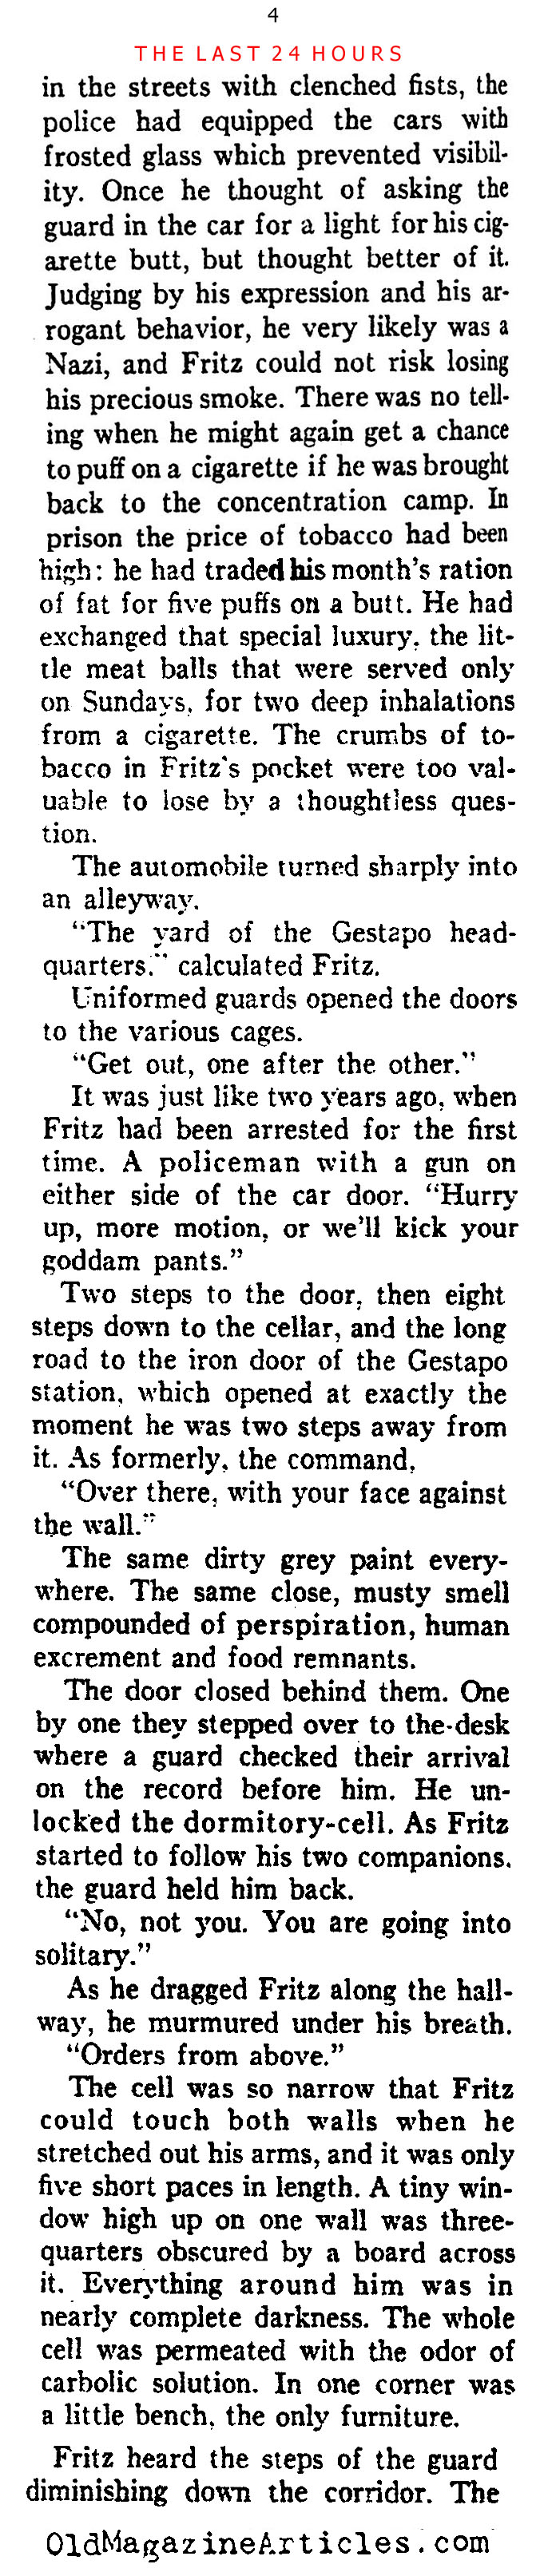 A German Dissident Recalls His Incarceration  (Ken Magazine, 1938)